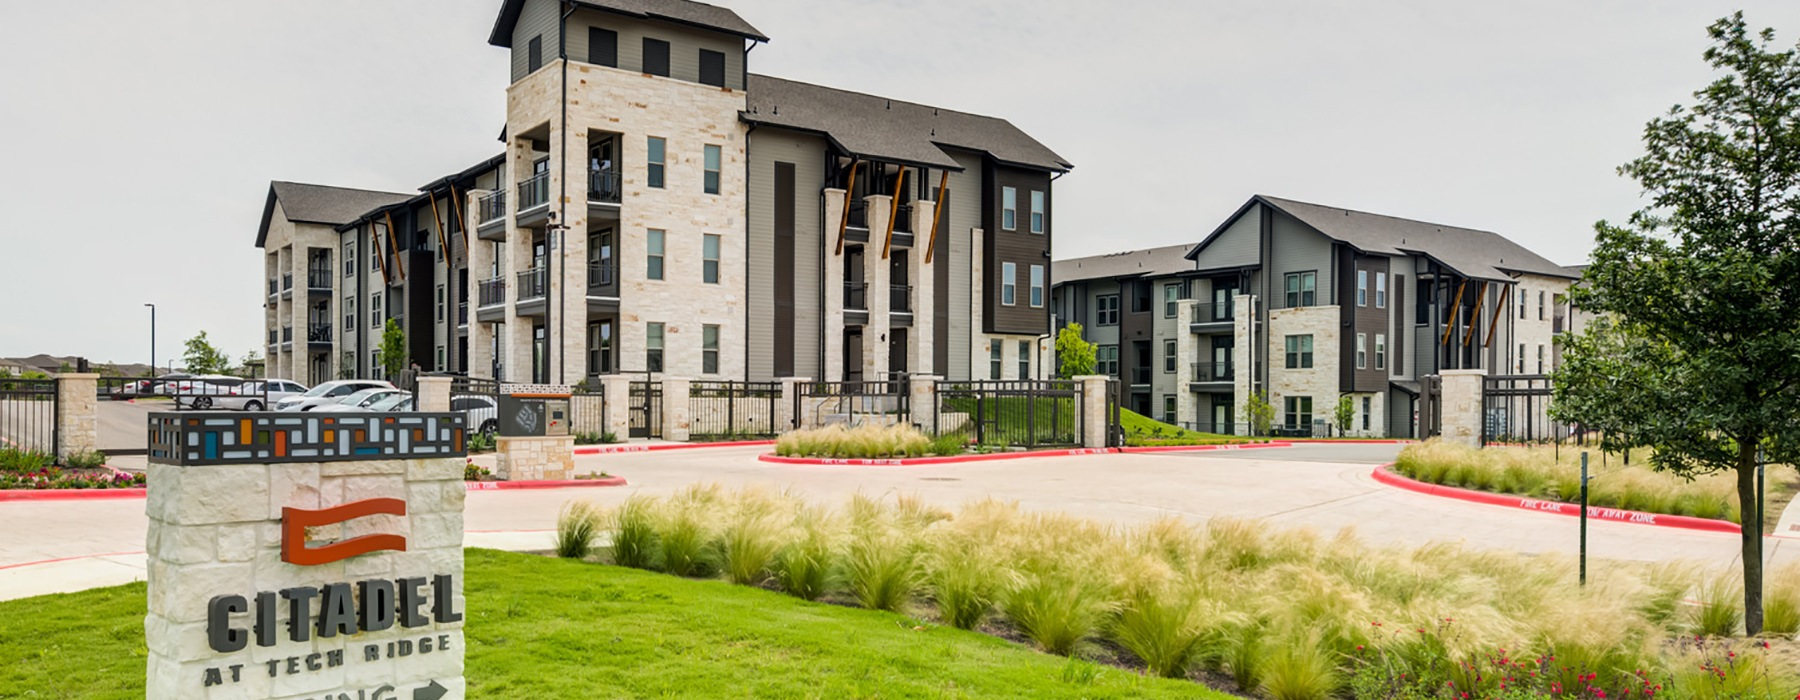 Exterior image of Citadel at Tech Ridge